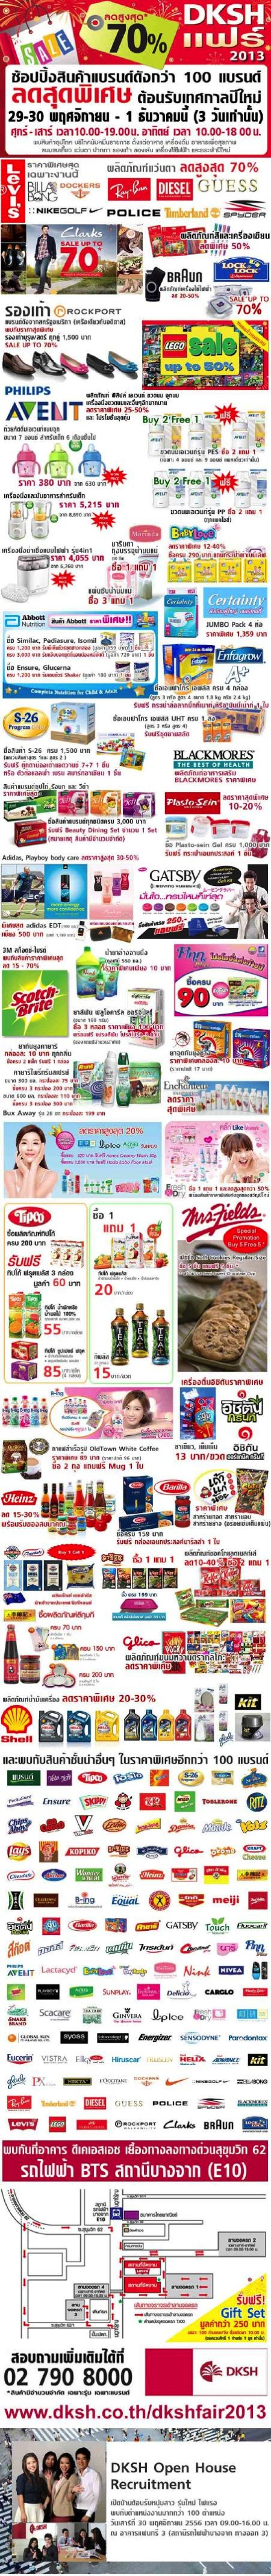 Brochure Promotion DKSH Fair 2013 Sale up to 70% off